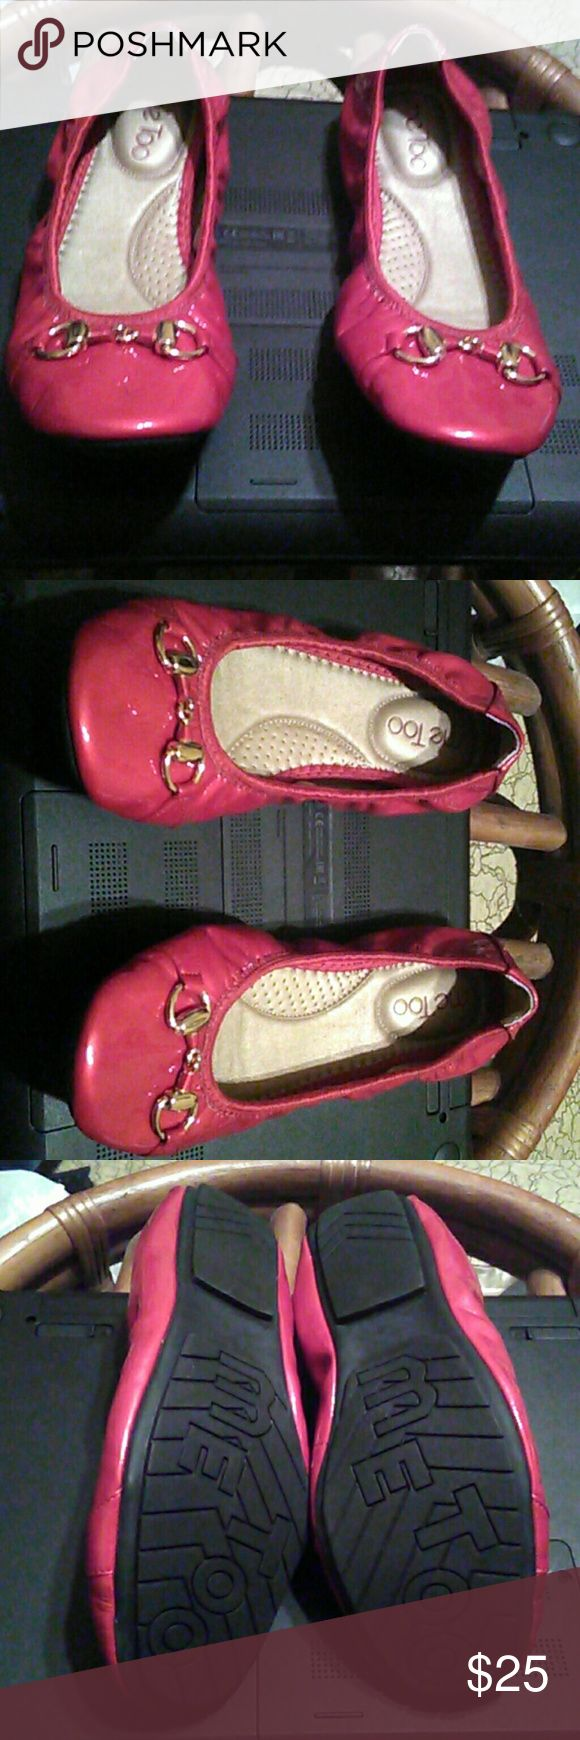 Red shiny leather  me too flats size  7 medium Brand new never worn.  Extremely comfortable brand of shoes.  I used to work in the Dillard's shoe department and this brand sold like hotcakes.  Soft leather.  Name of the shoe is Limbo.  Size 7 medium me too Shoes Flats & Loafers